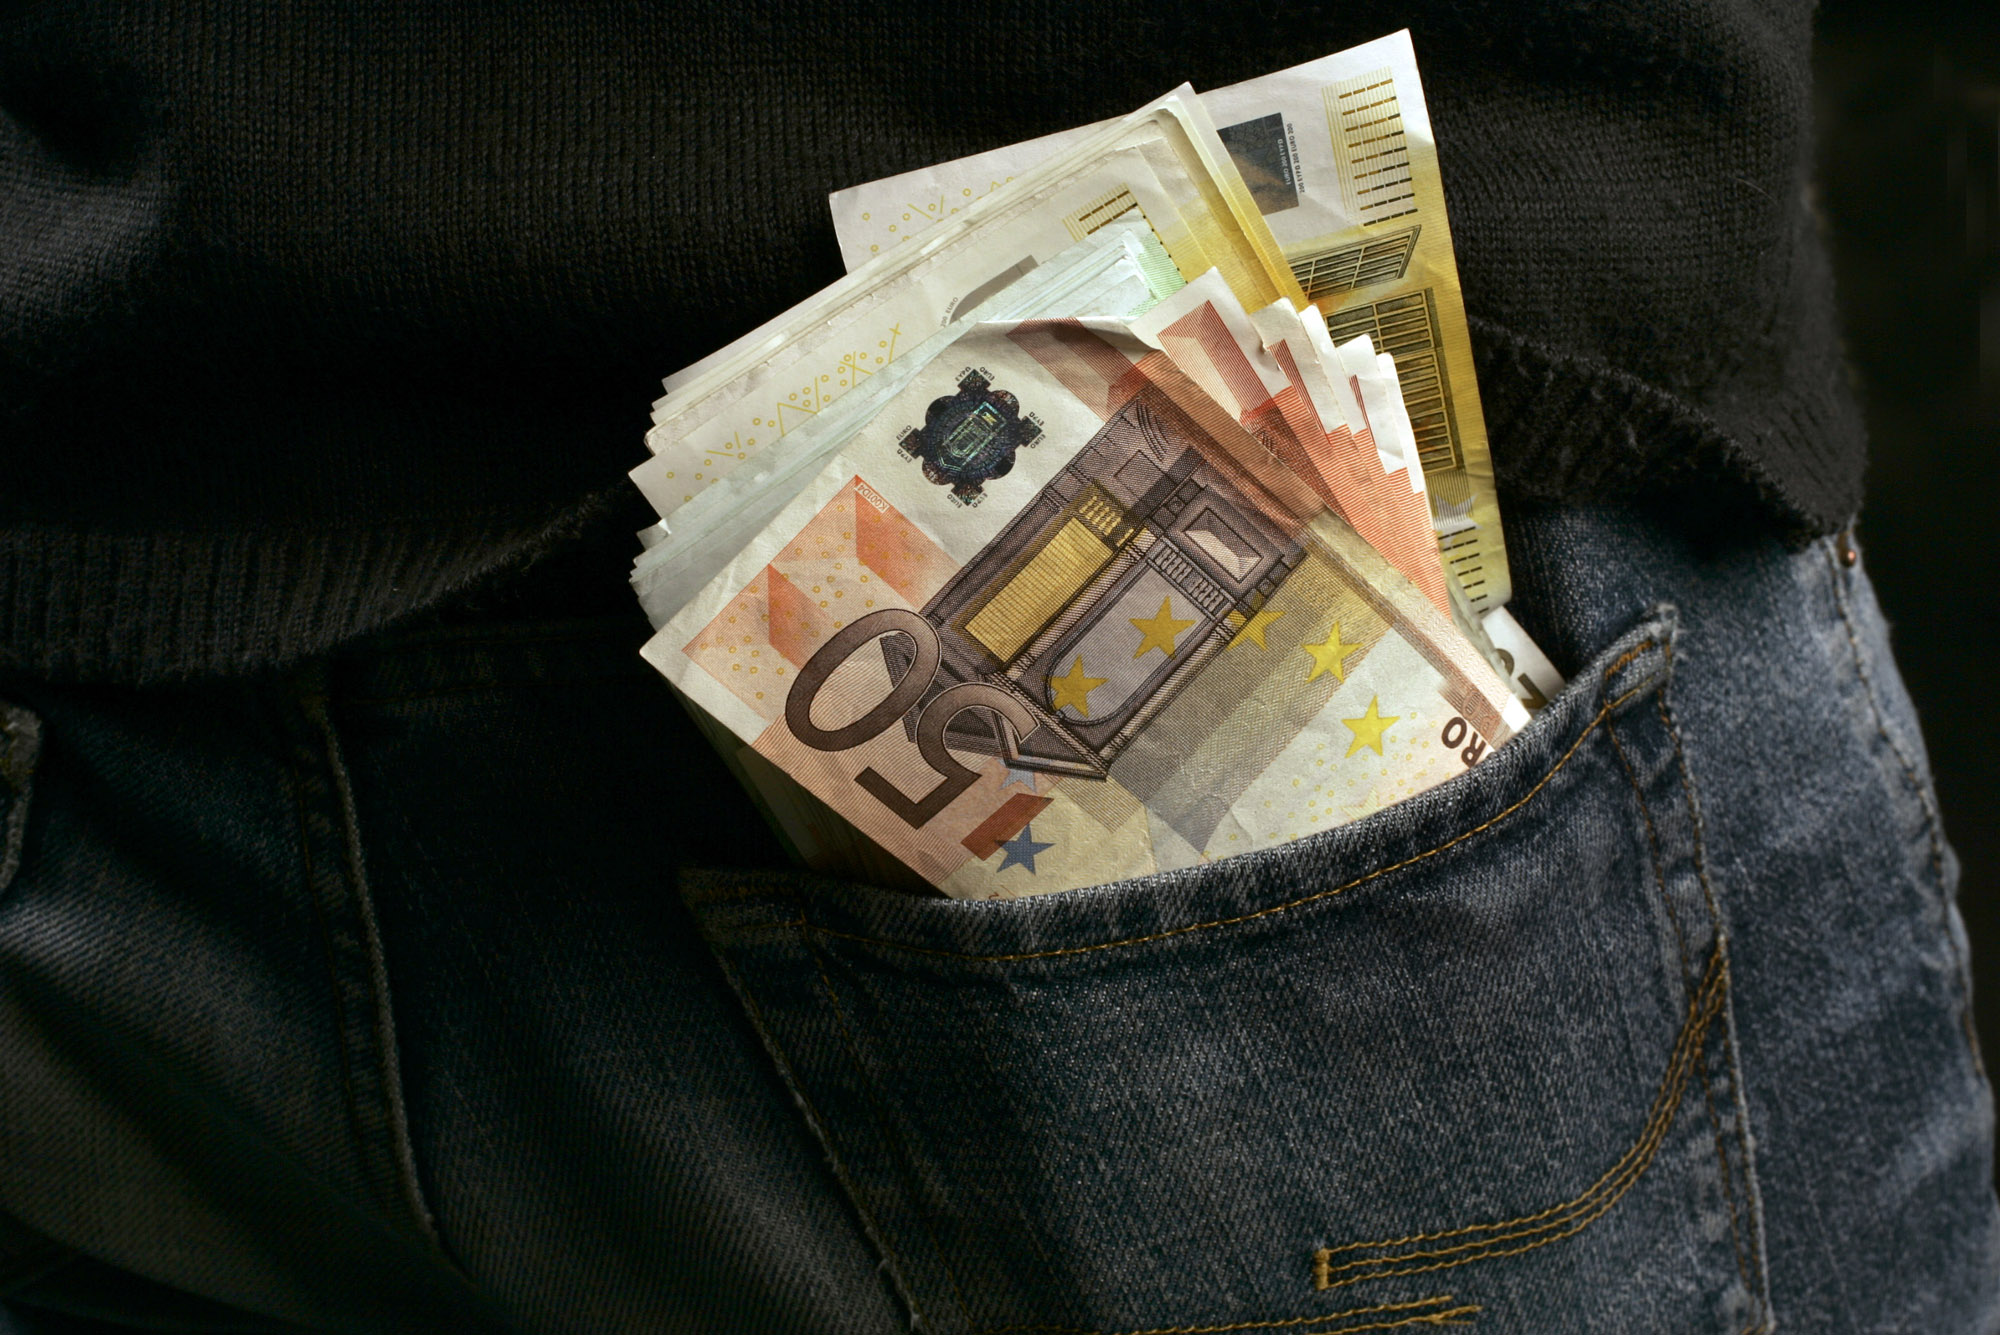 geld, money, bankbiljet, banknote, briefgeld, papiergeld, bills, stapels, zwartgeld, witwassen, kluis, sparen, savings, contant, cash